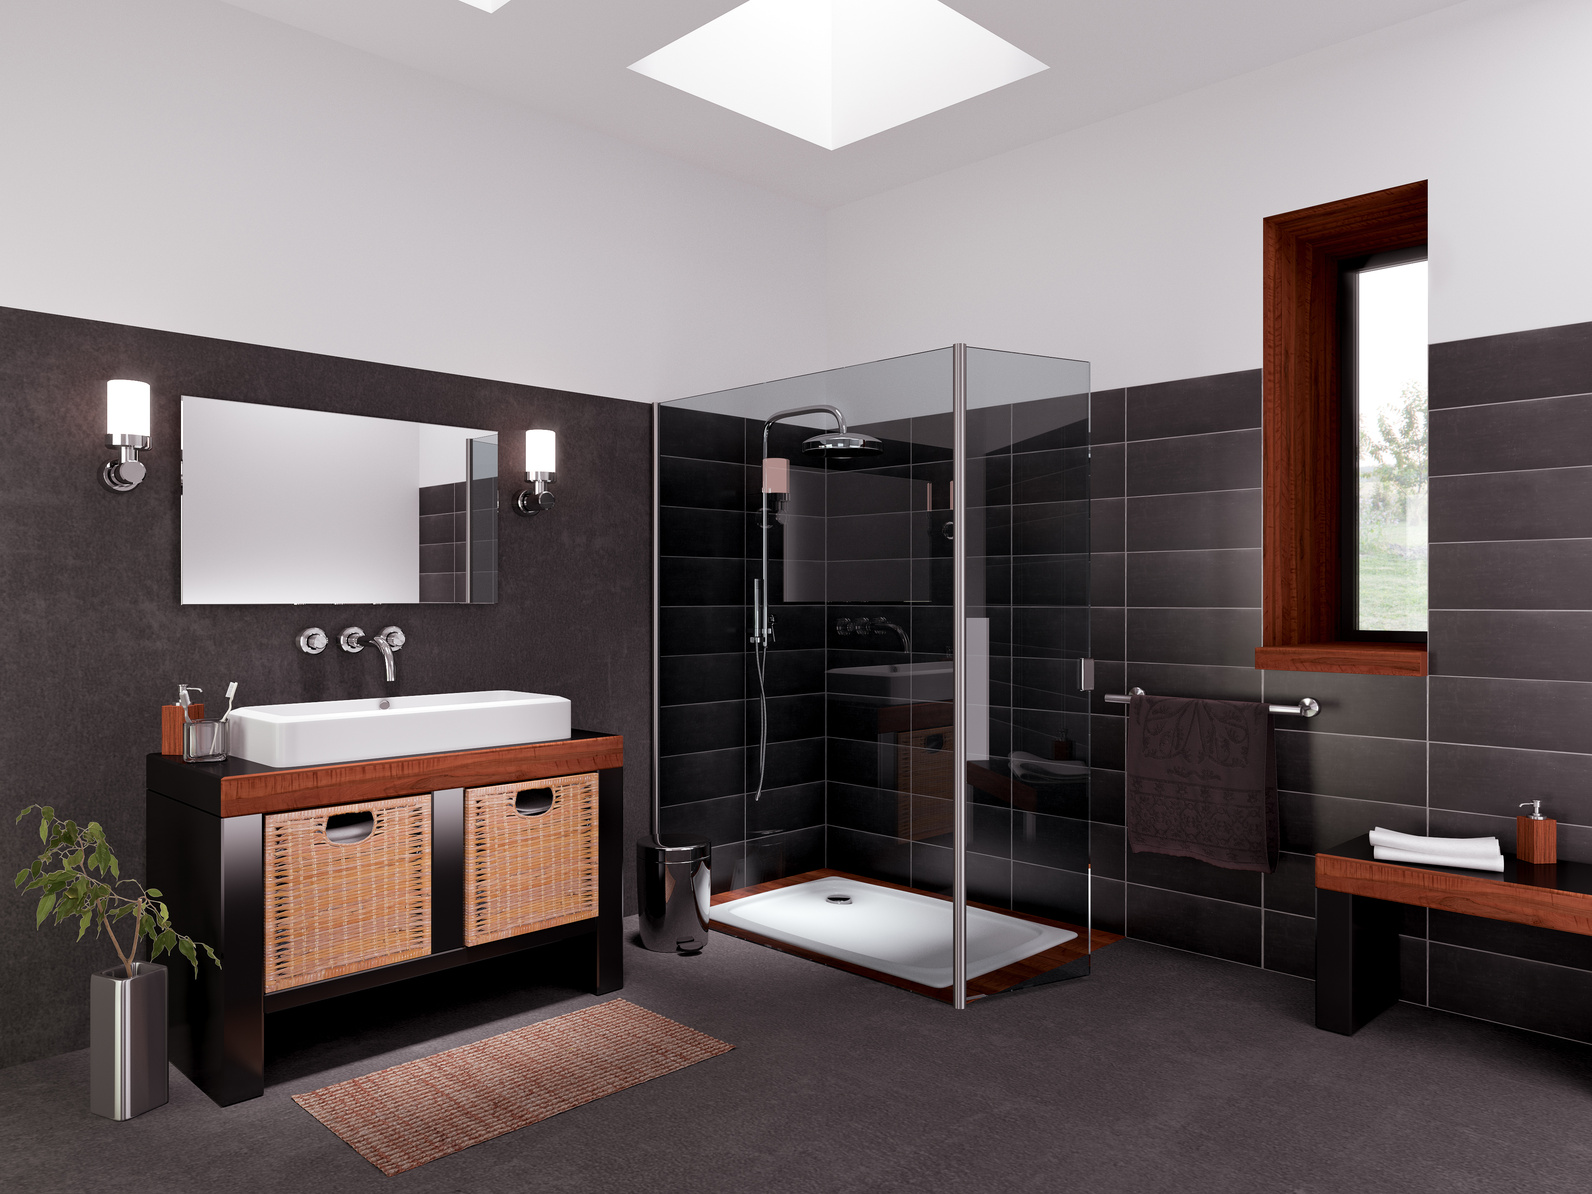 Tips To Add a Sense of Elegant Simplicity to the Bathroom